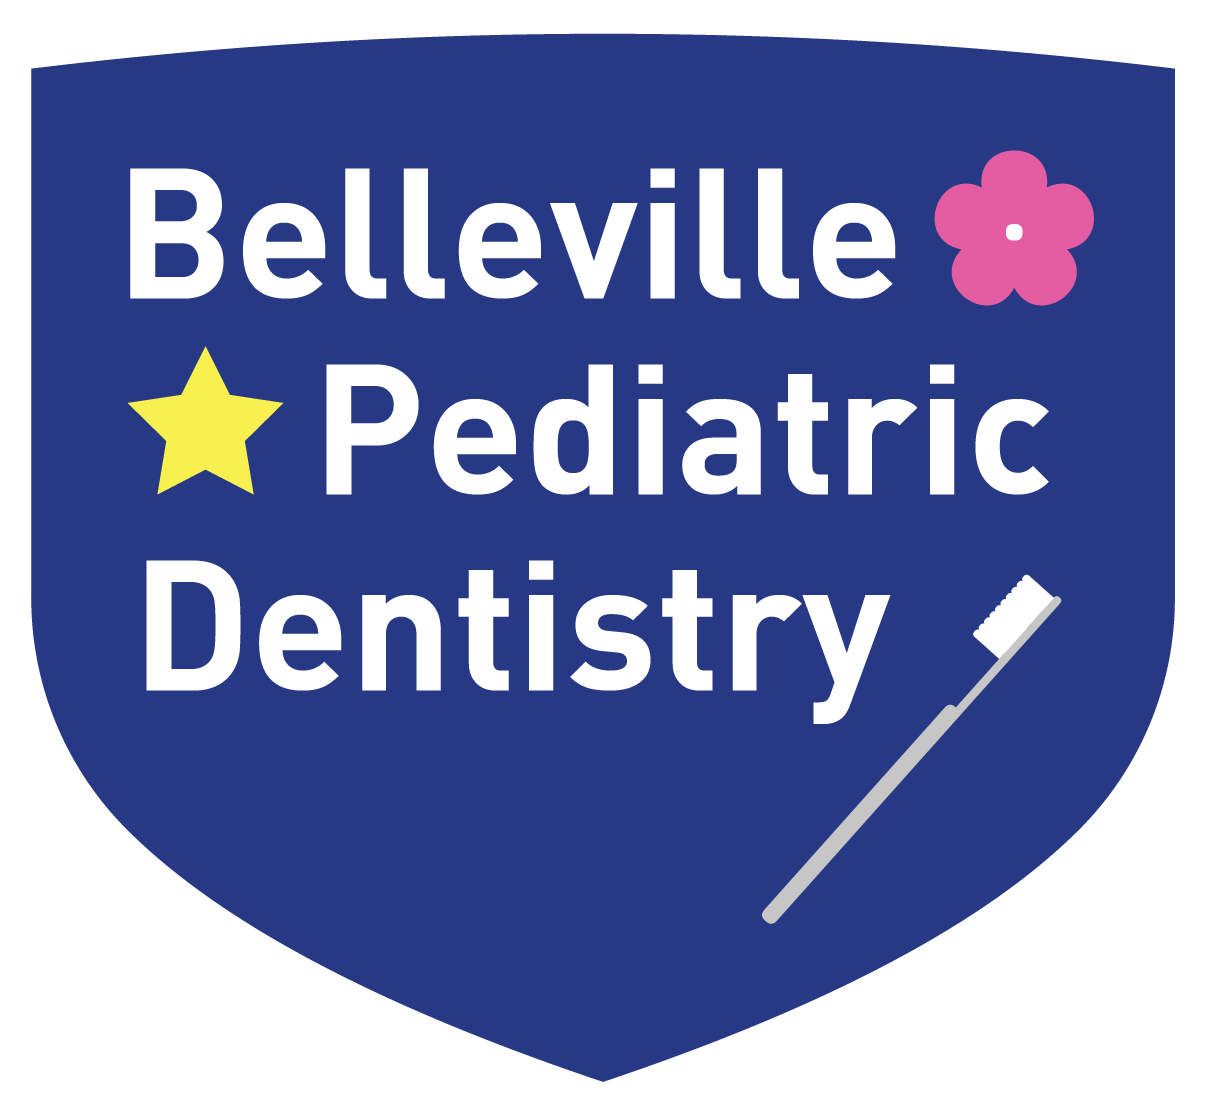 Belleville Pediatric Dentistry